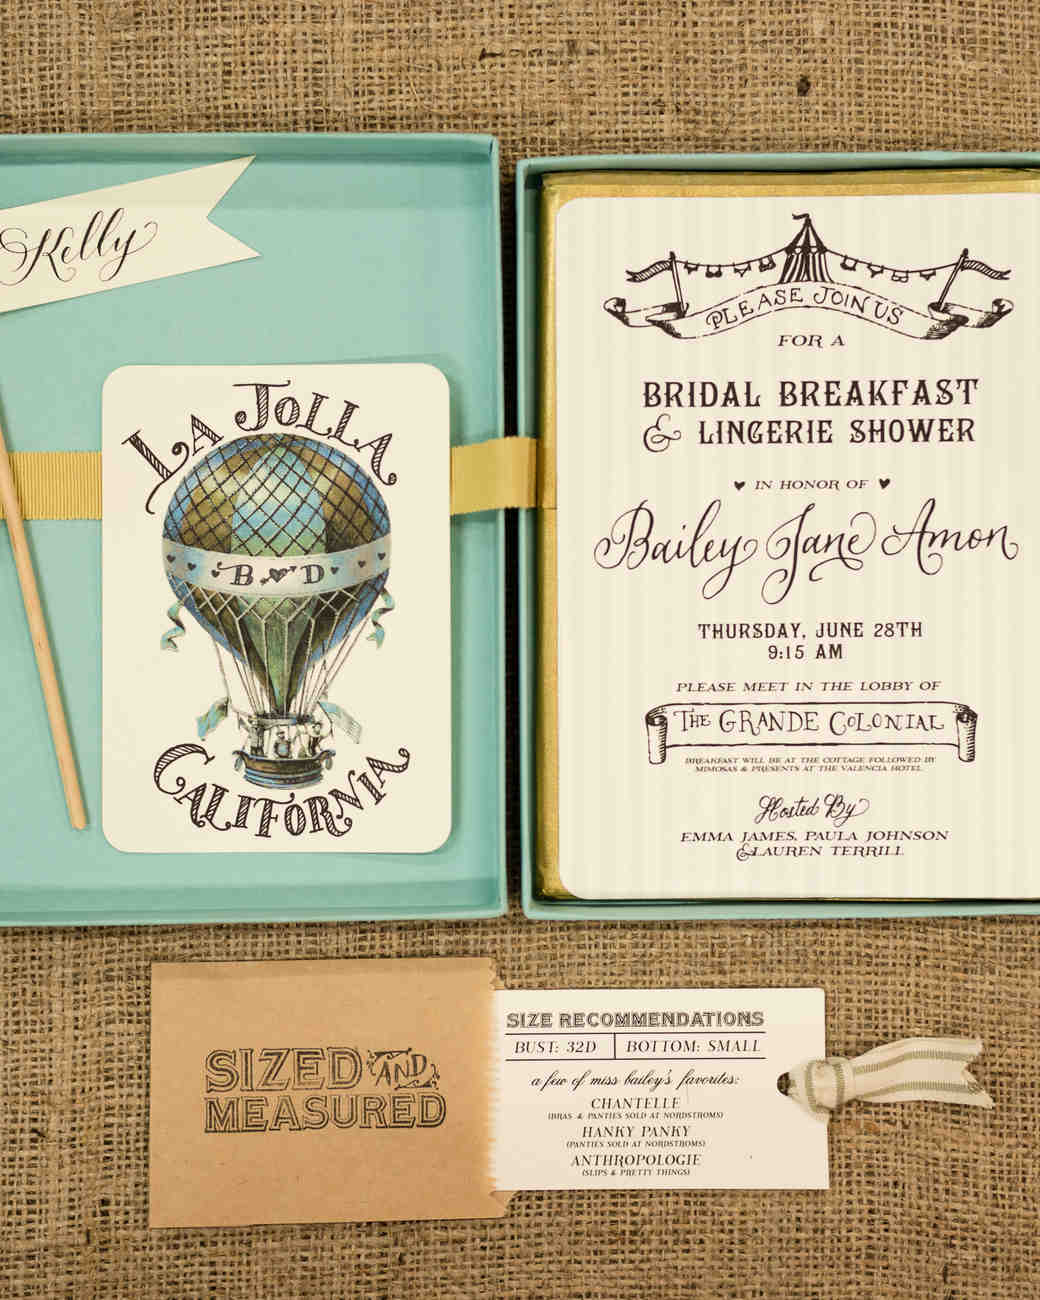 shower-invites-antiquaria-bailey-0414.jpg